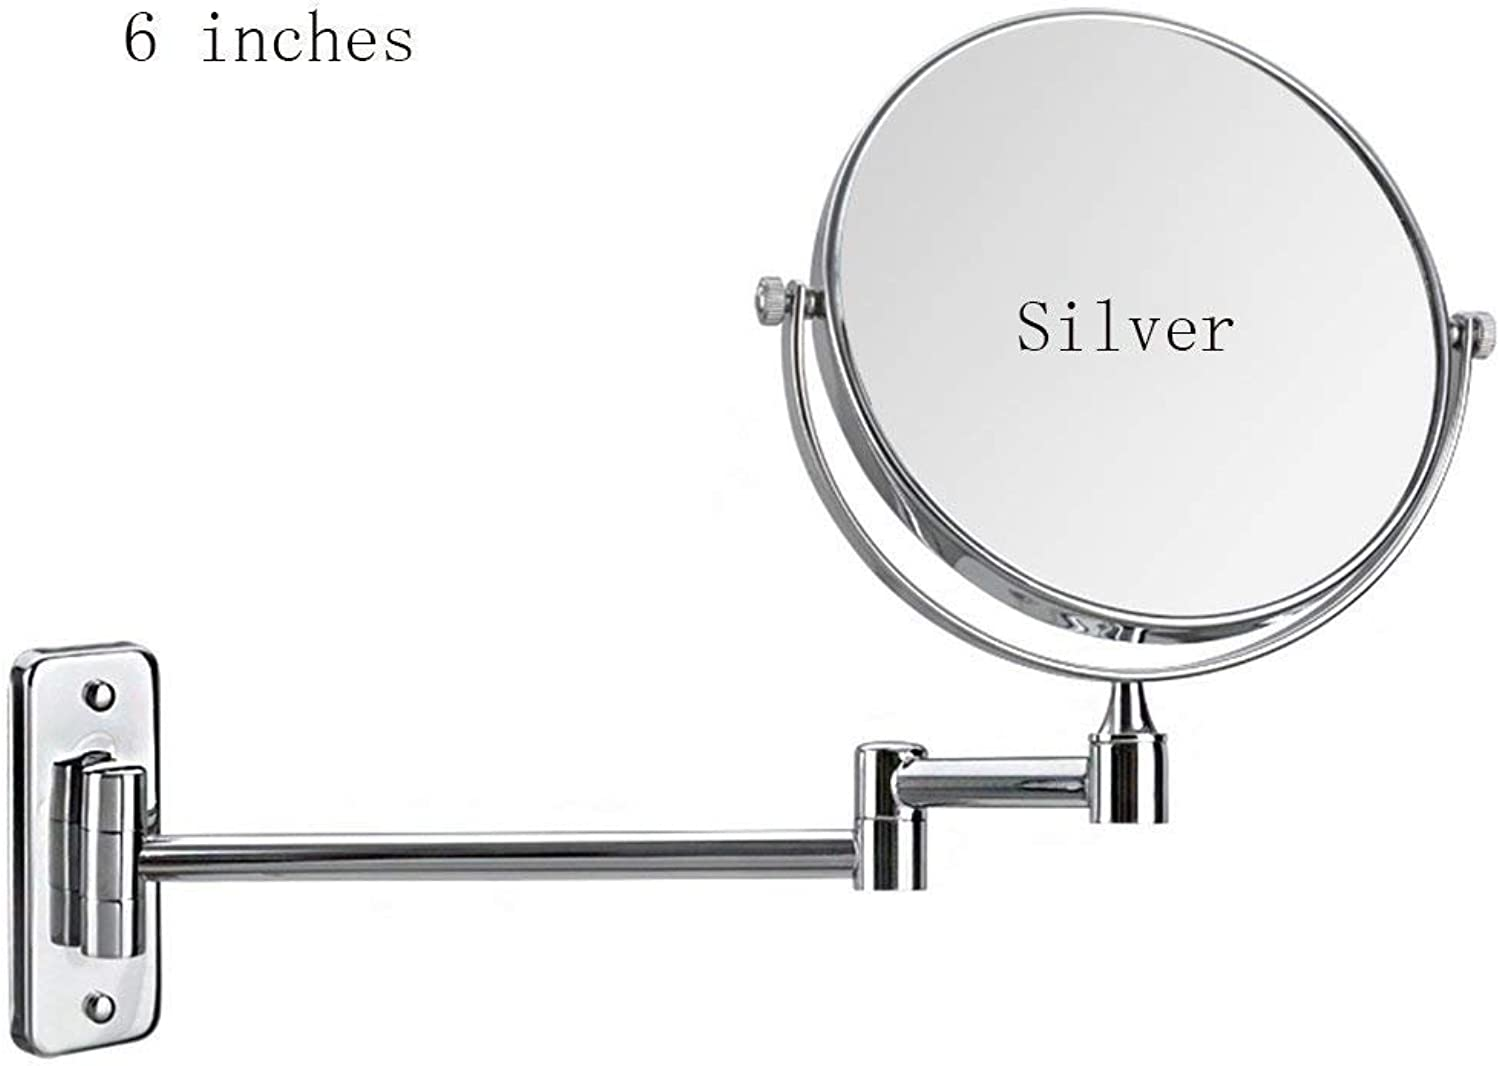 Double Mini Notebook Bathroom Mirror Mirror Mirror Mirror Mirror of European Beauty Wall of Appropriate Folding for Bedroom and Bathroom (Silver color, Size  6 inches)